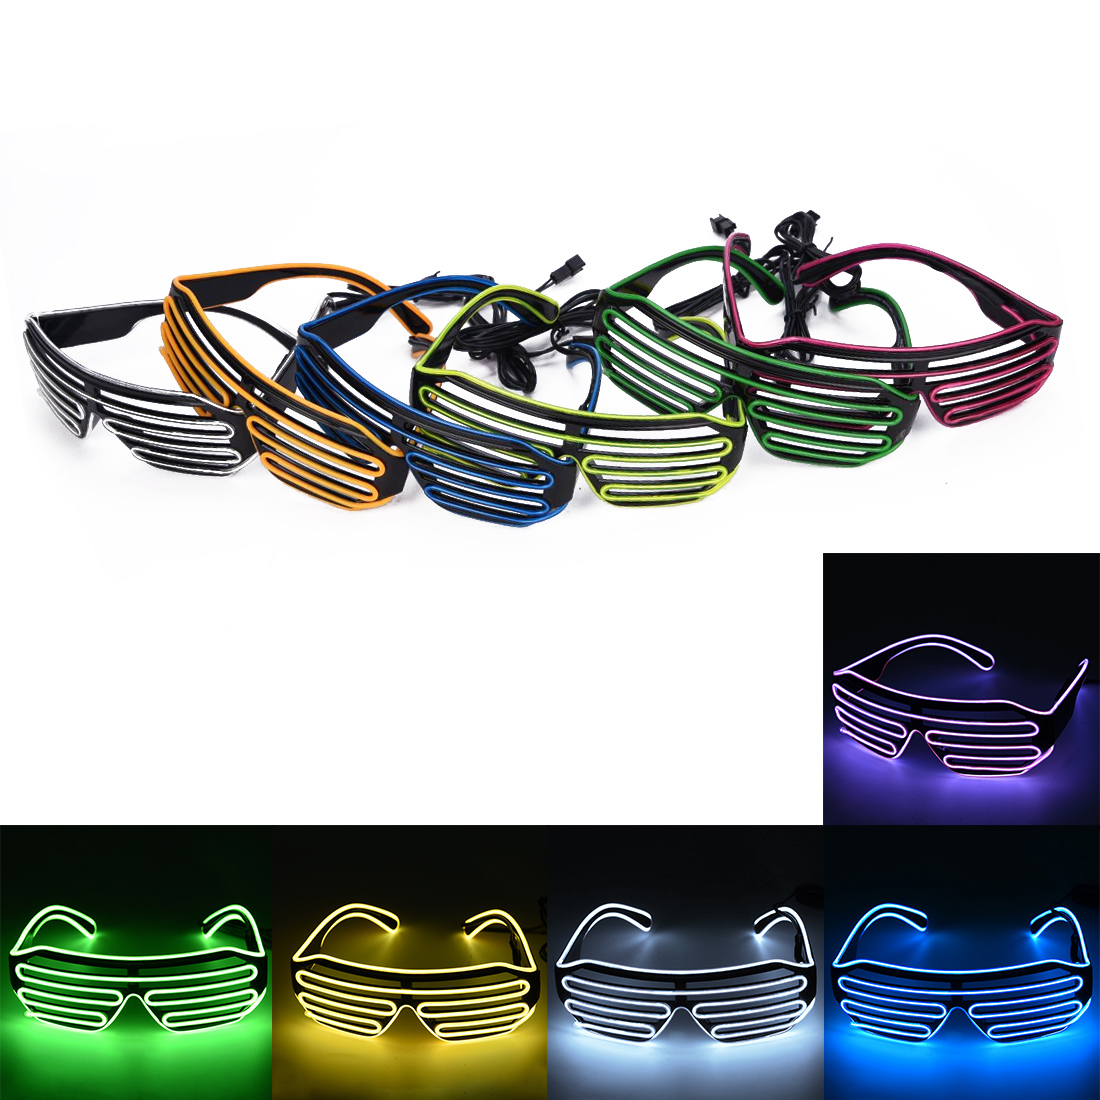 Forceful 5 Colors Flaring Glasses Bar Party Fluorescent Dance Dj Bright Glasses El Wire Led Light Glow Rave Atmosphere Activing Props 100% Original Apparel Accessories